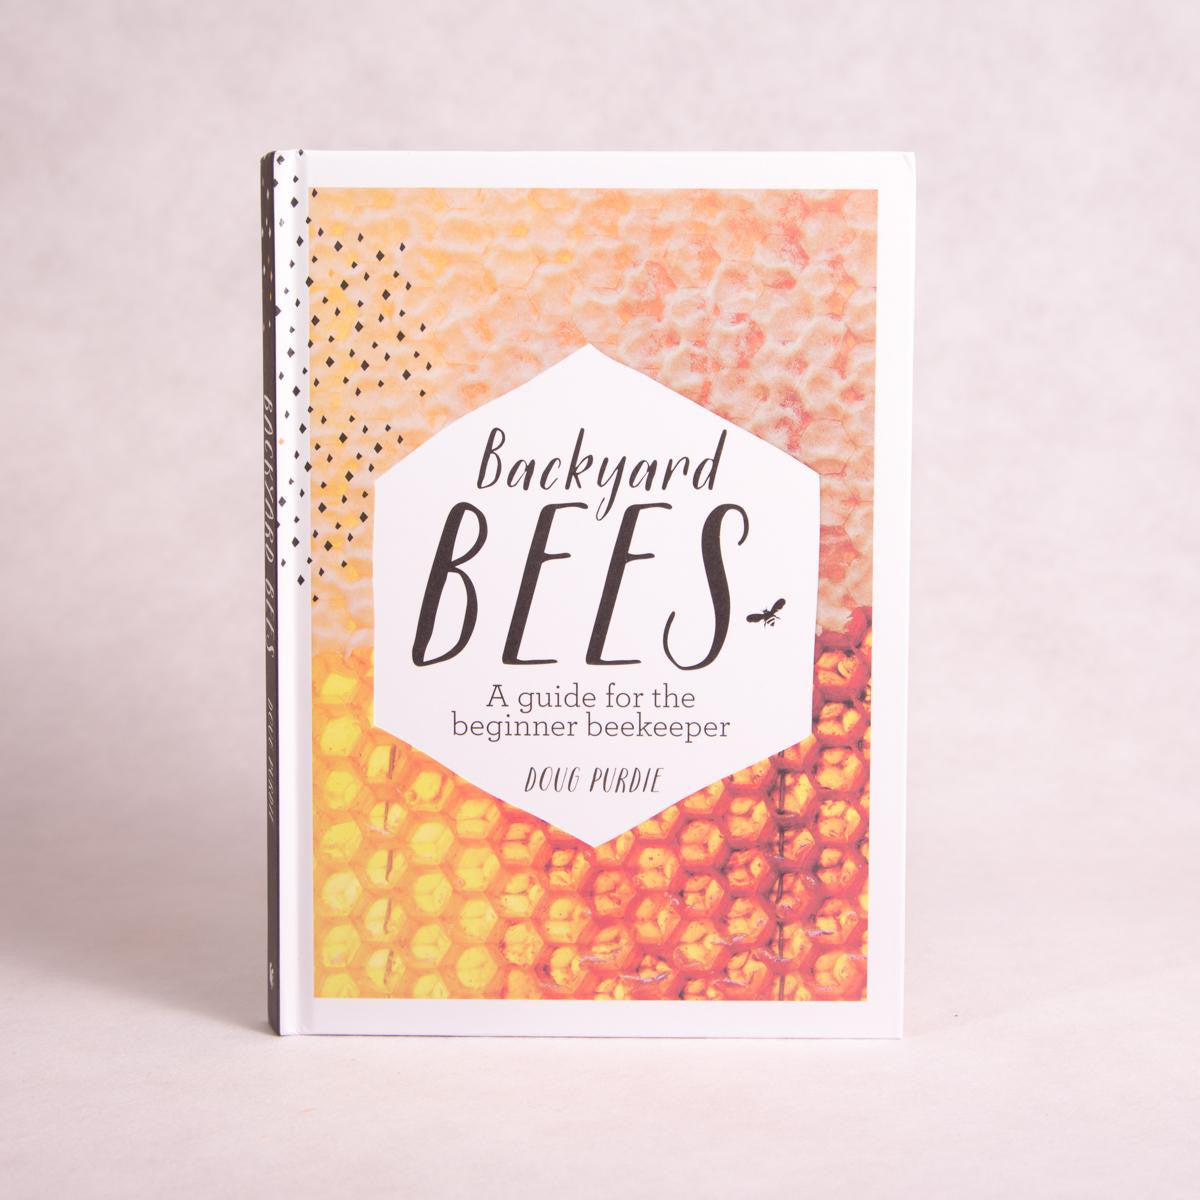 Backyard Bees | By Doug Purdie - Book - Throw Some Seeds